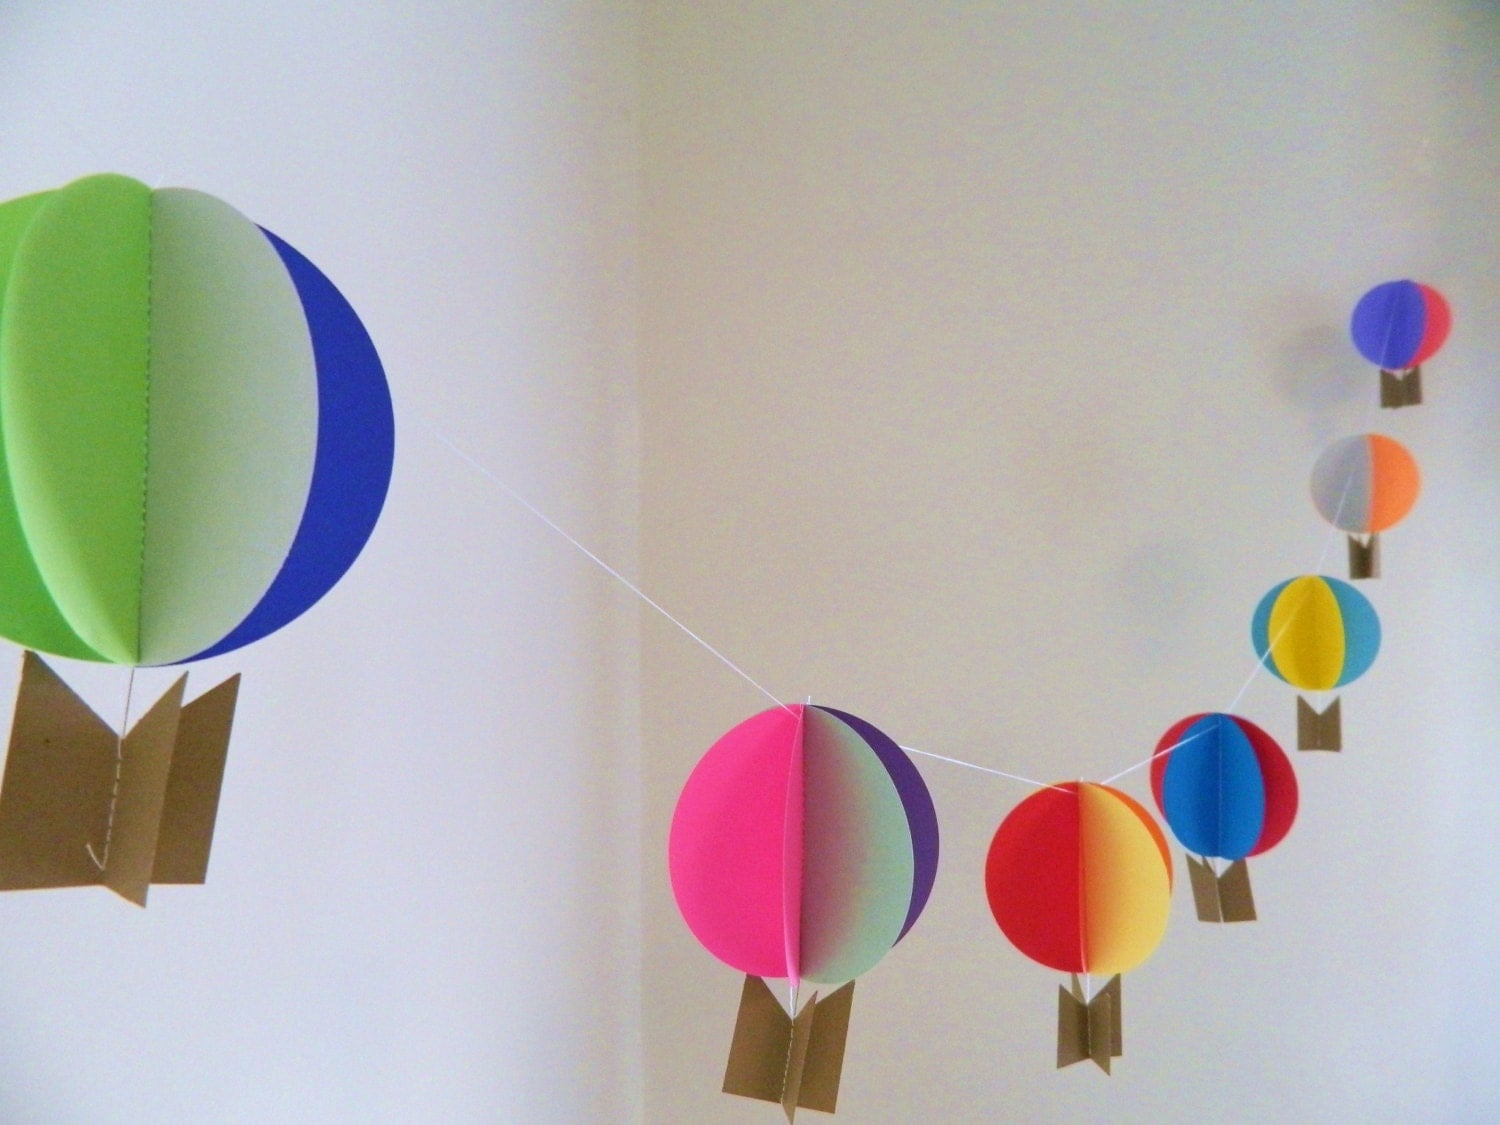 Hot Air Balloon Decorations / Up Up And Away Decorations